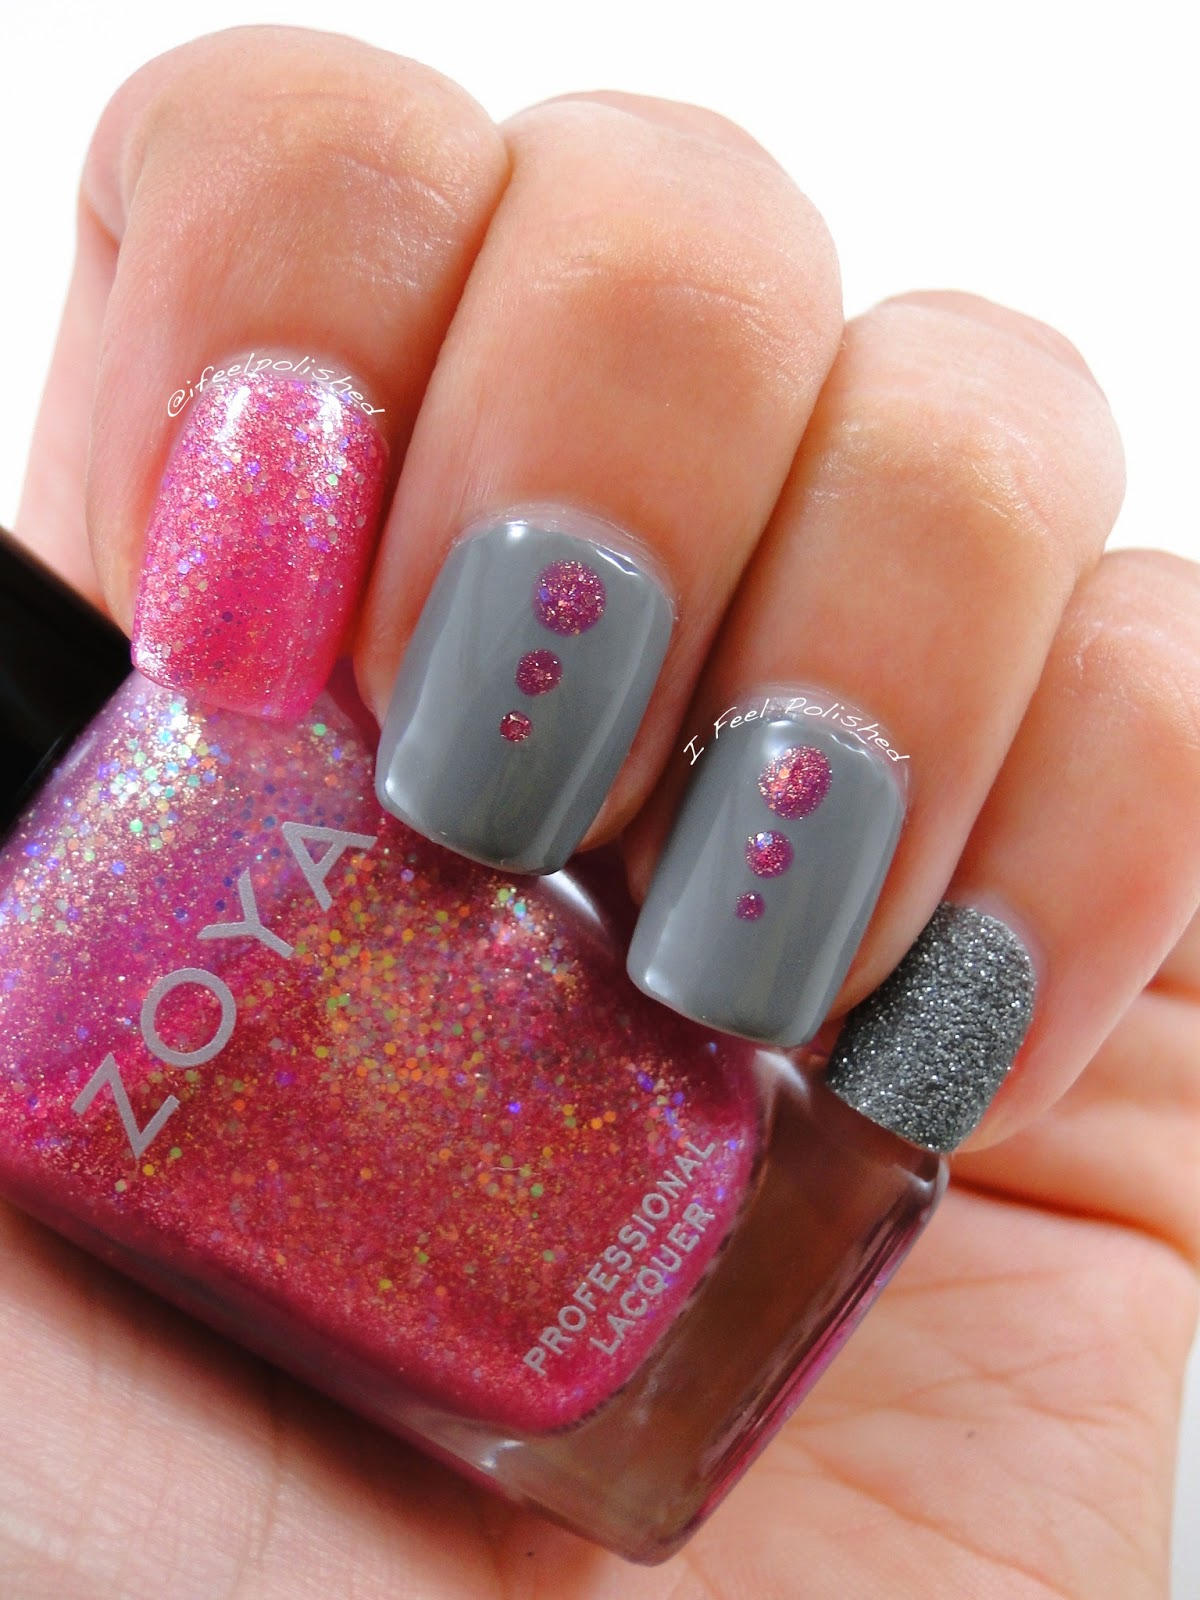 I Feel Polished!: Grey and Pink Nails